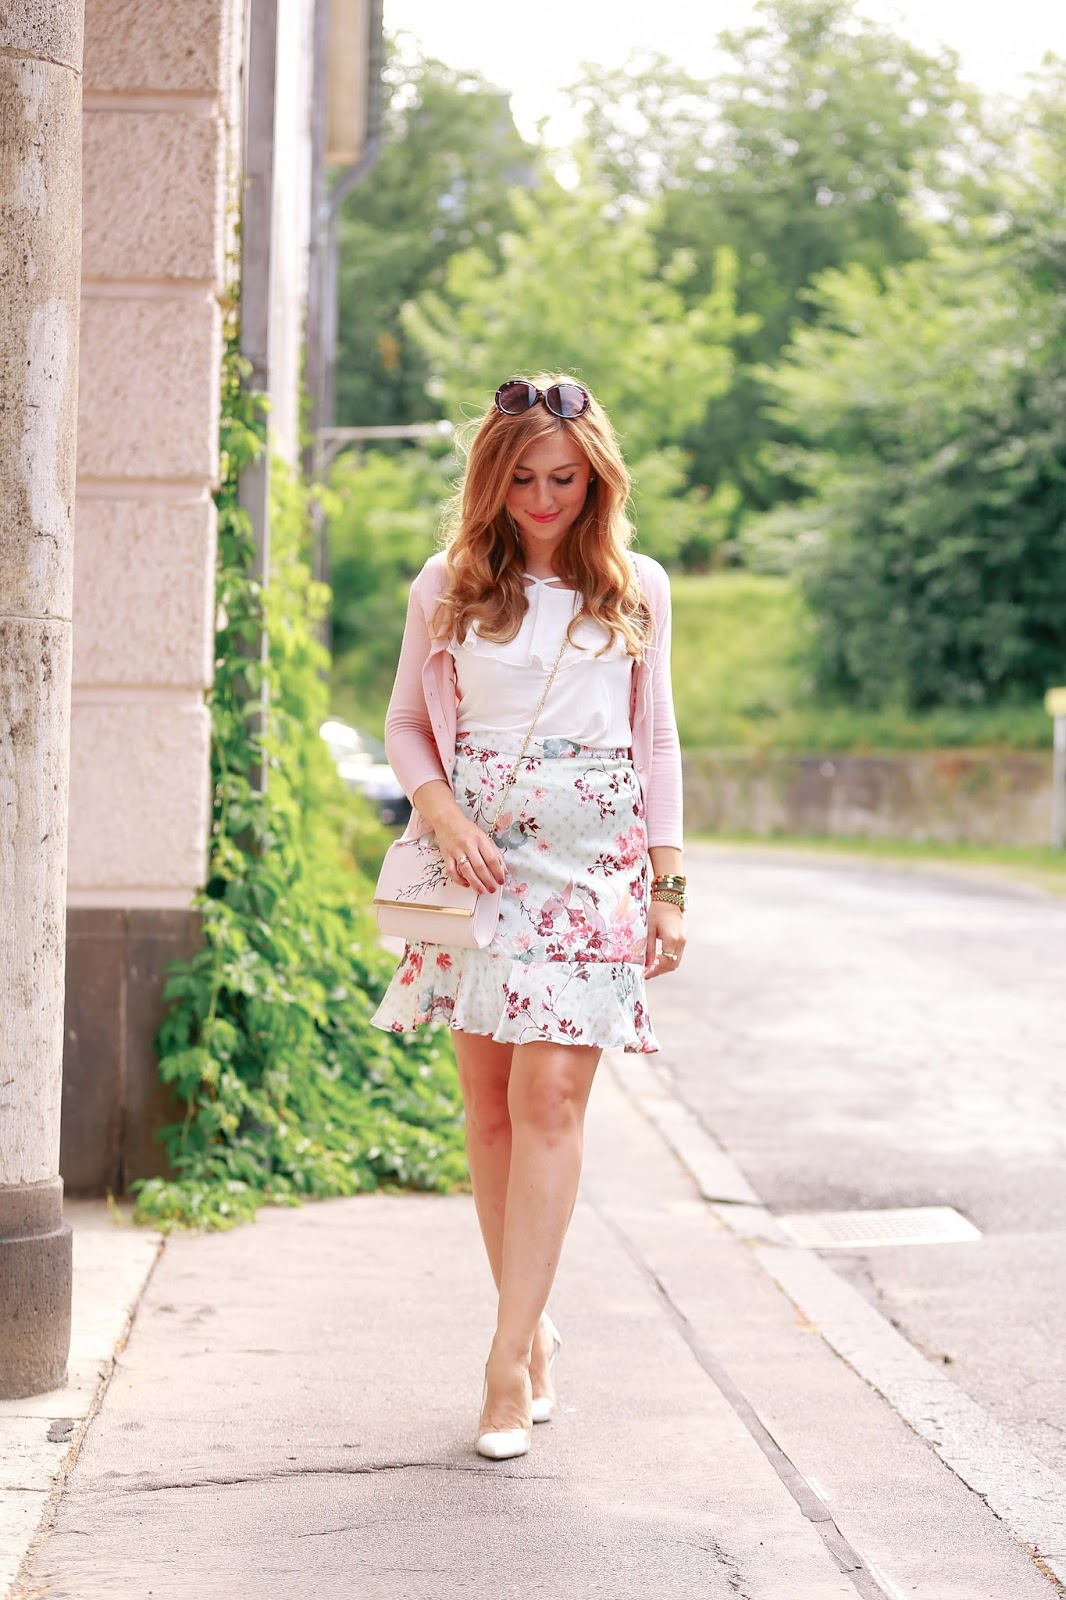 Fashionstylebyjohanna-styleblog-Blogger-aus-Deutschland-Orsay-dress